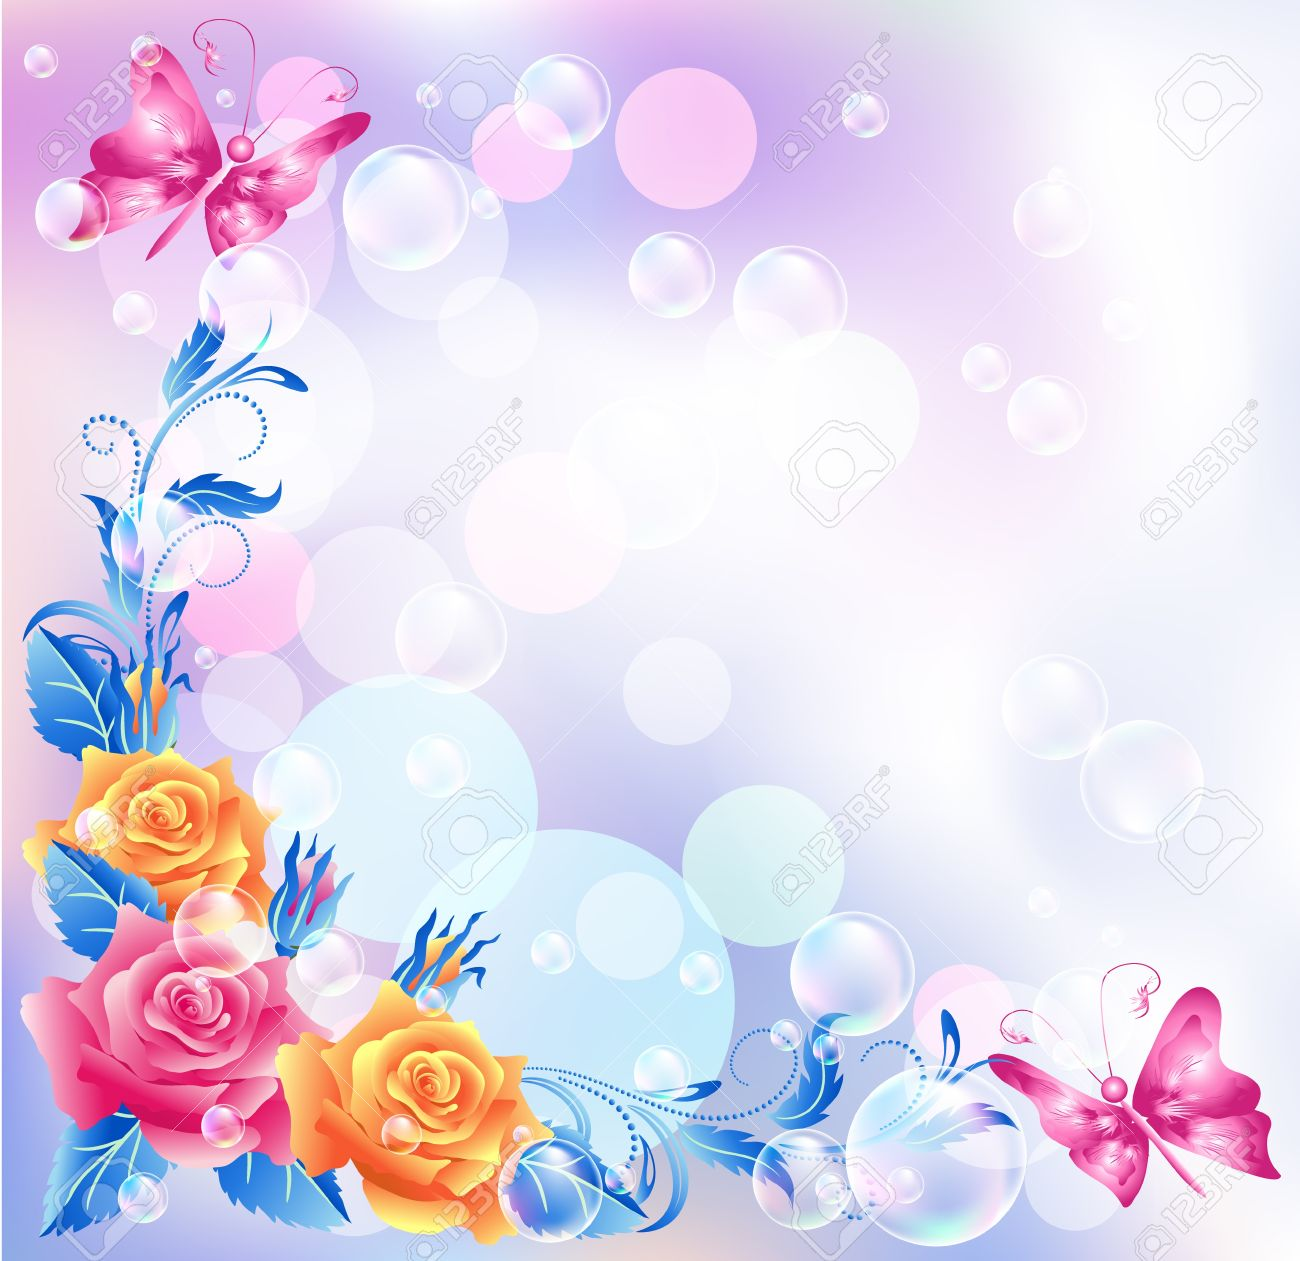 Floral background with boke - 14567995